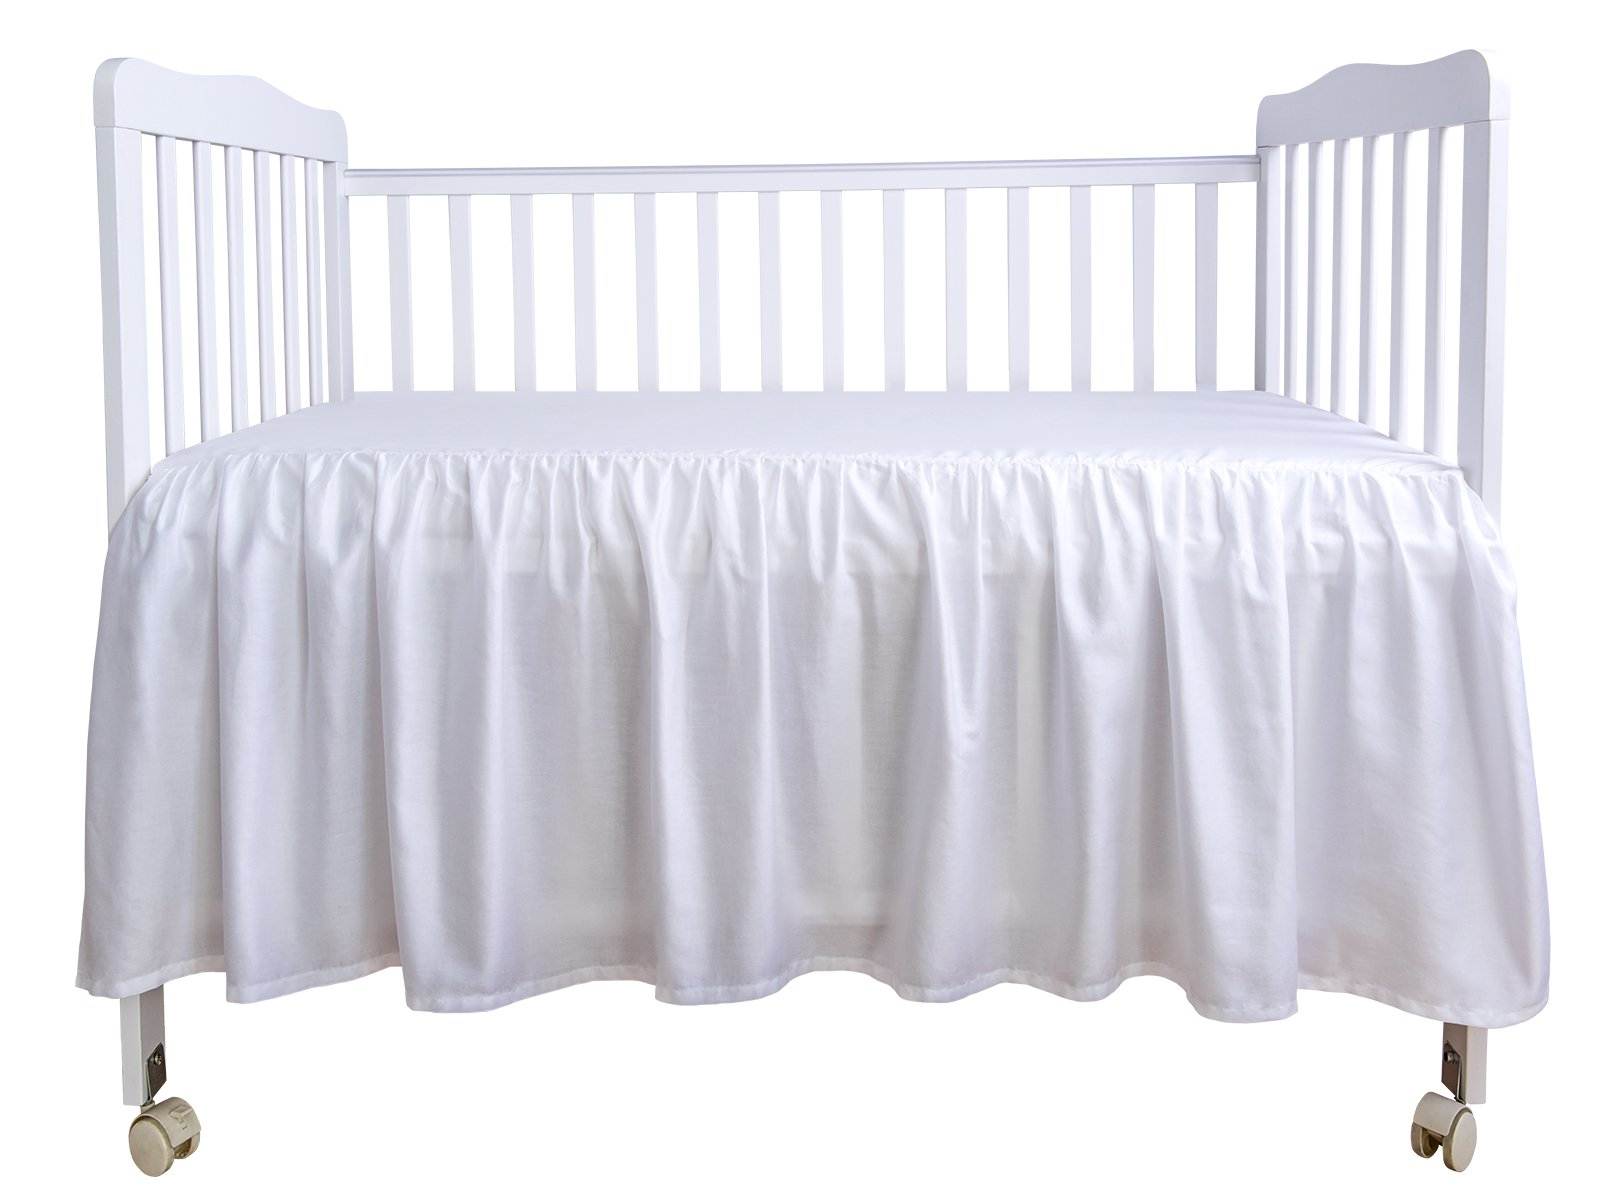 PHF Crib Bed Skirt Dust Ruffle 100% Cotton Nursery Crib Bedding for Baby 17'' Drop Pack of 2 White